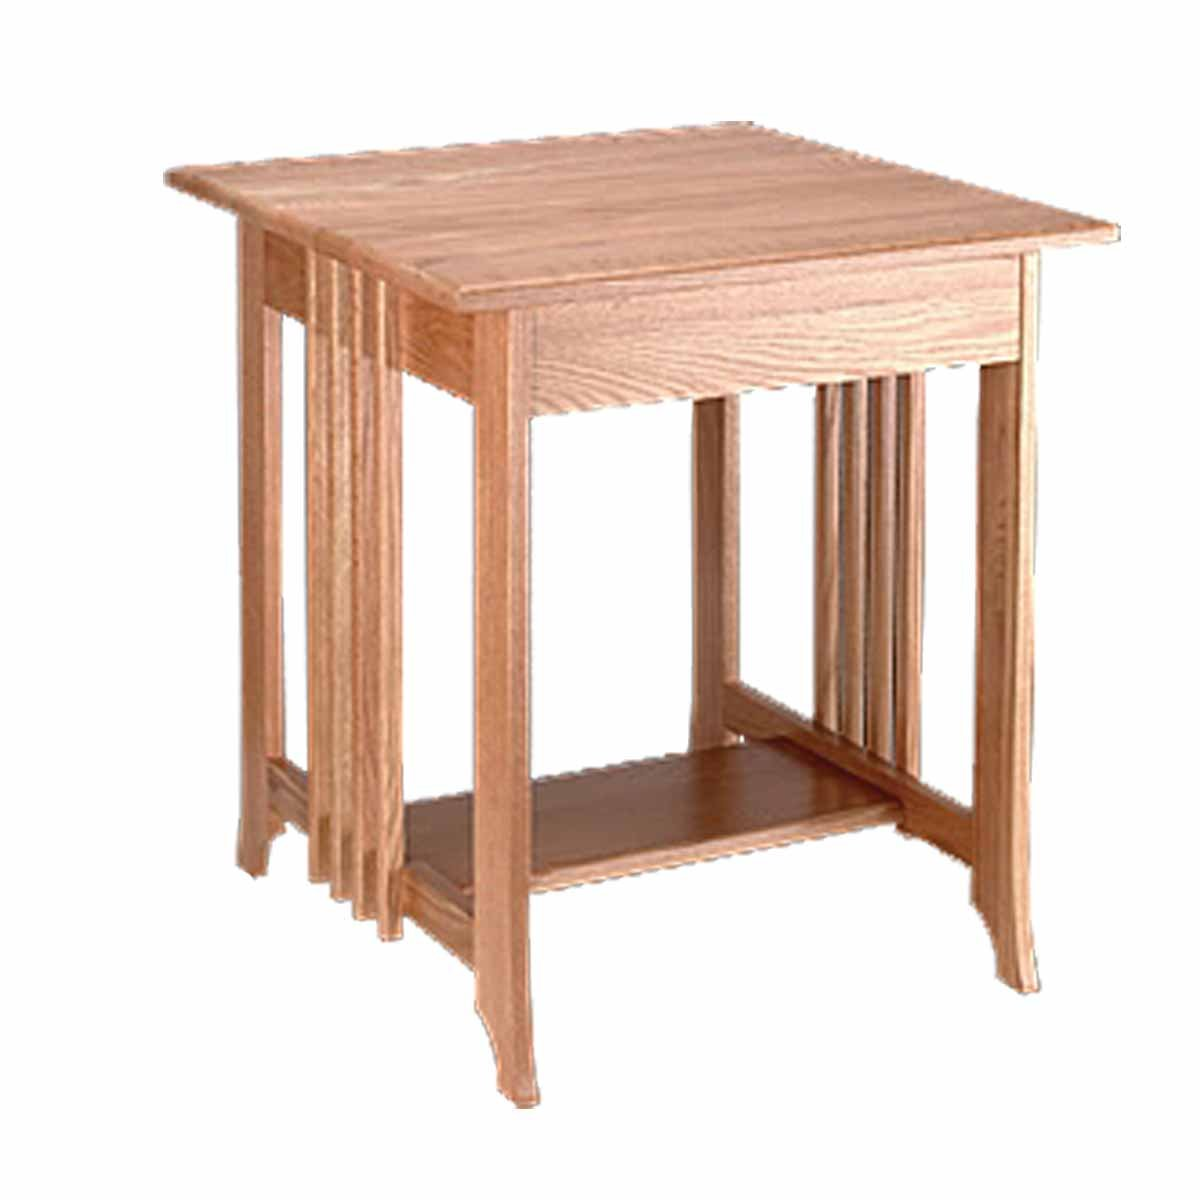 renovator supply end tables living room unfinished oak furniture mission table inch height kitchen dining royal manufacturing coffee with chairs under decorating over couch best